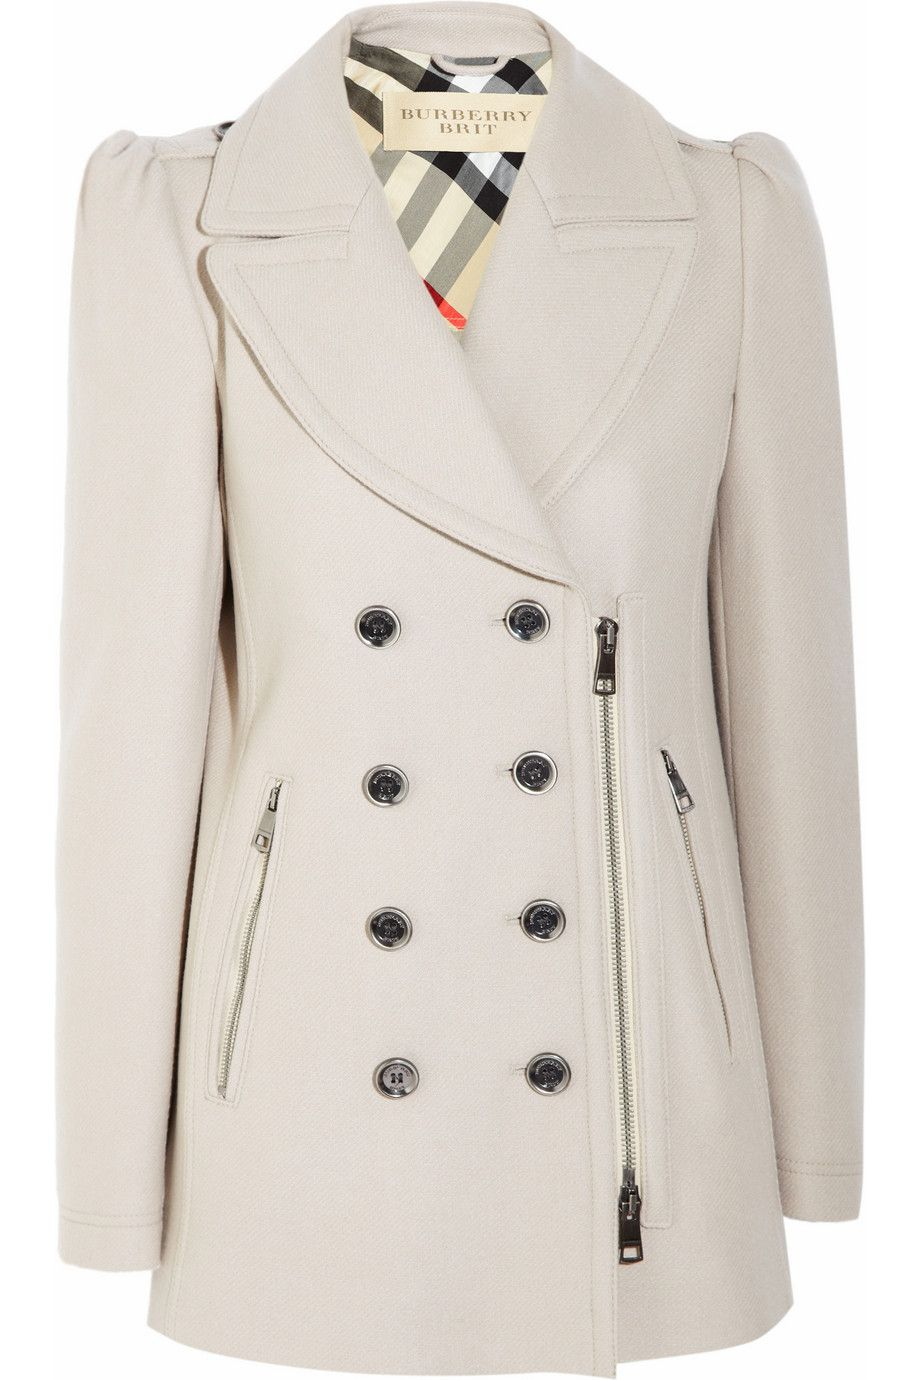 Burberry Brit|Double-breasted wool-blend coat|